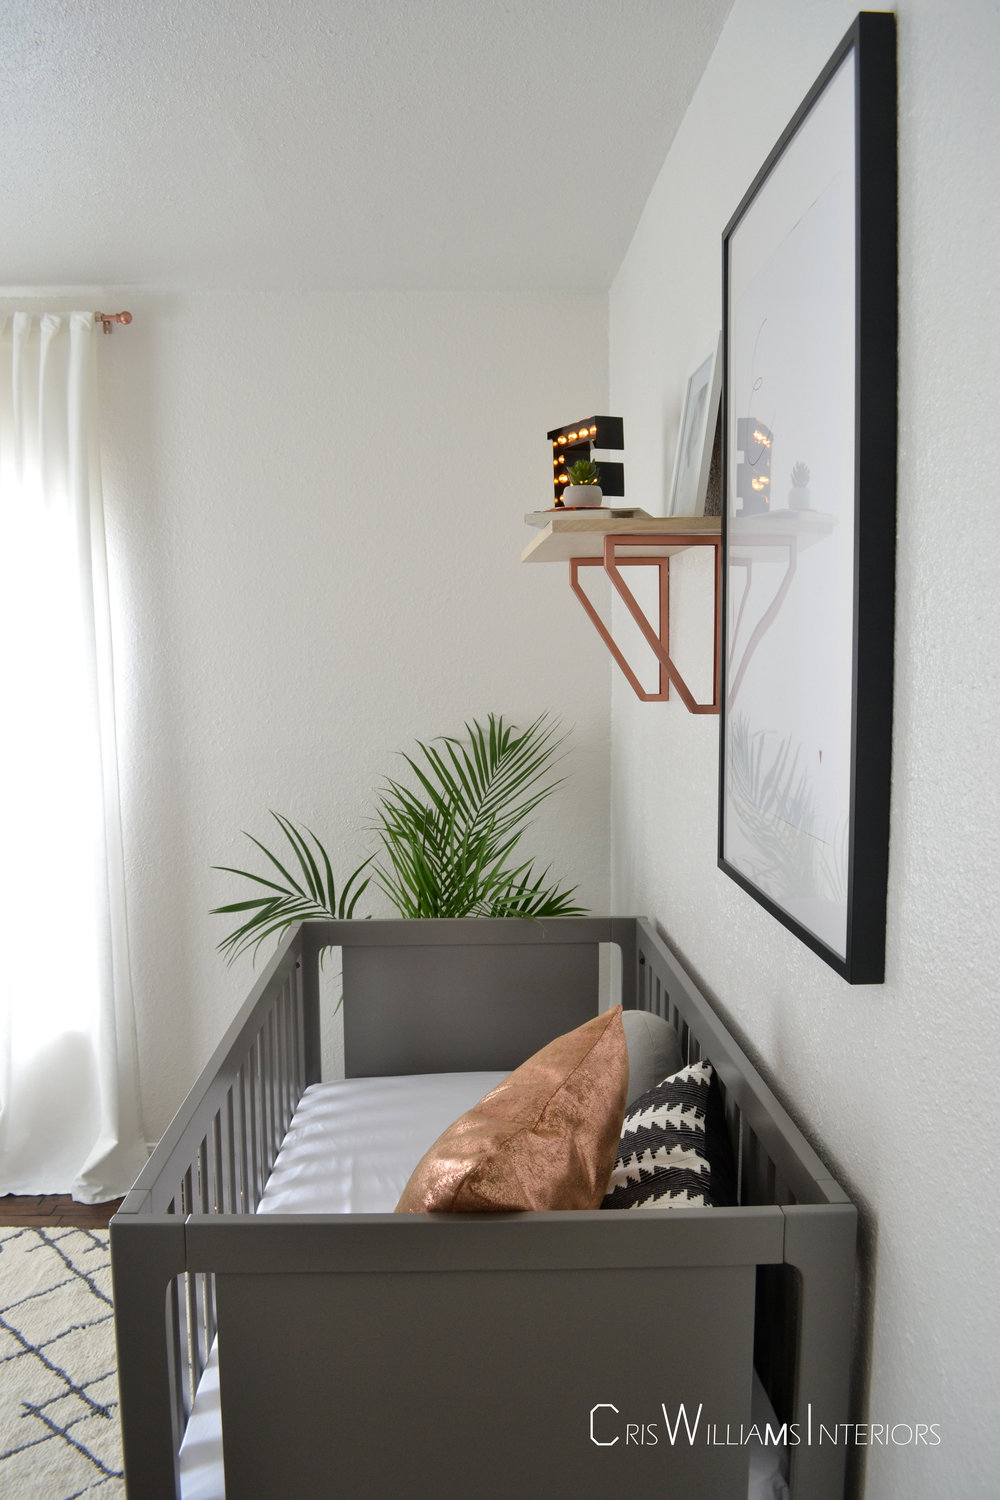 Copper accents tie the space together.